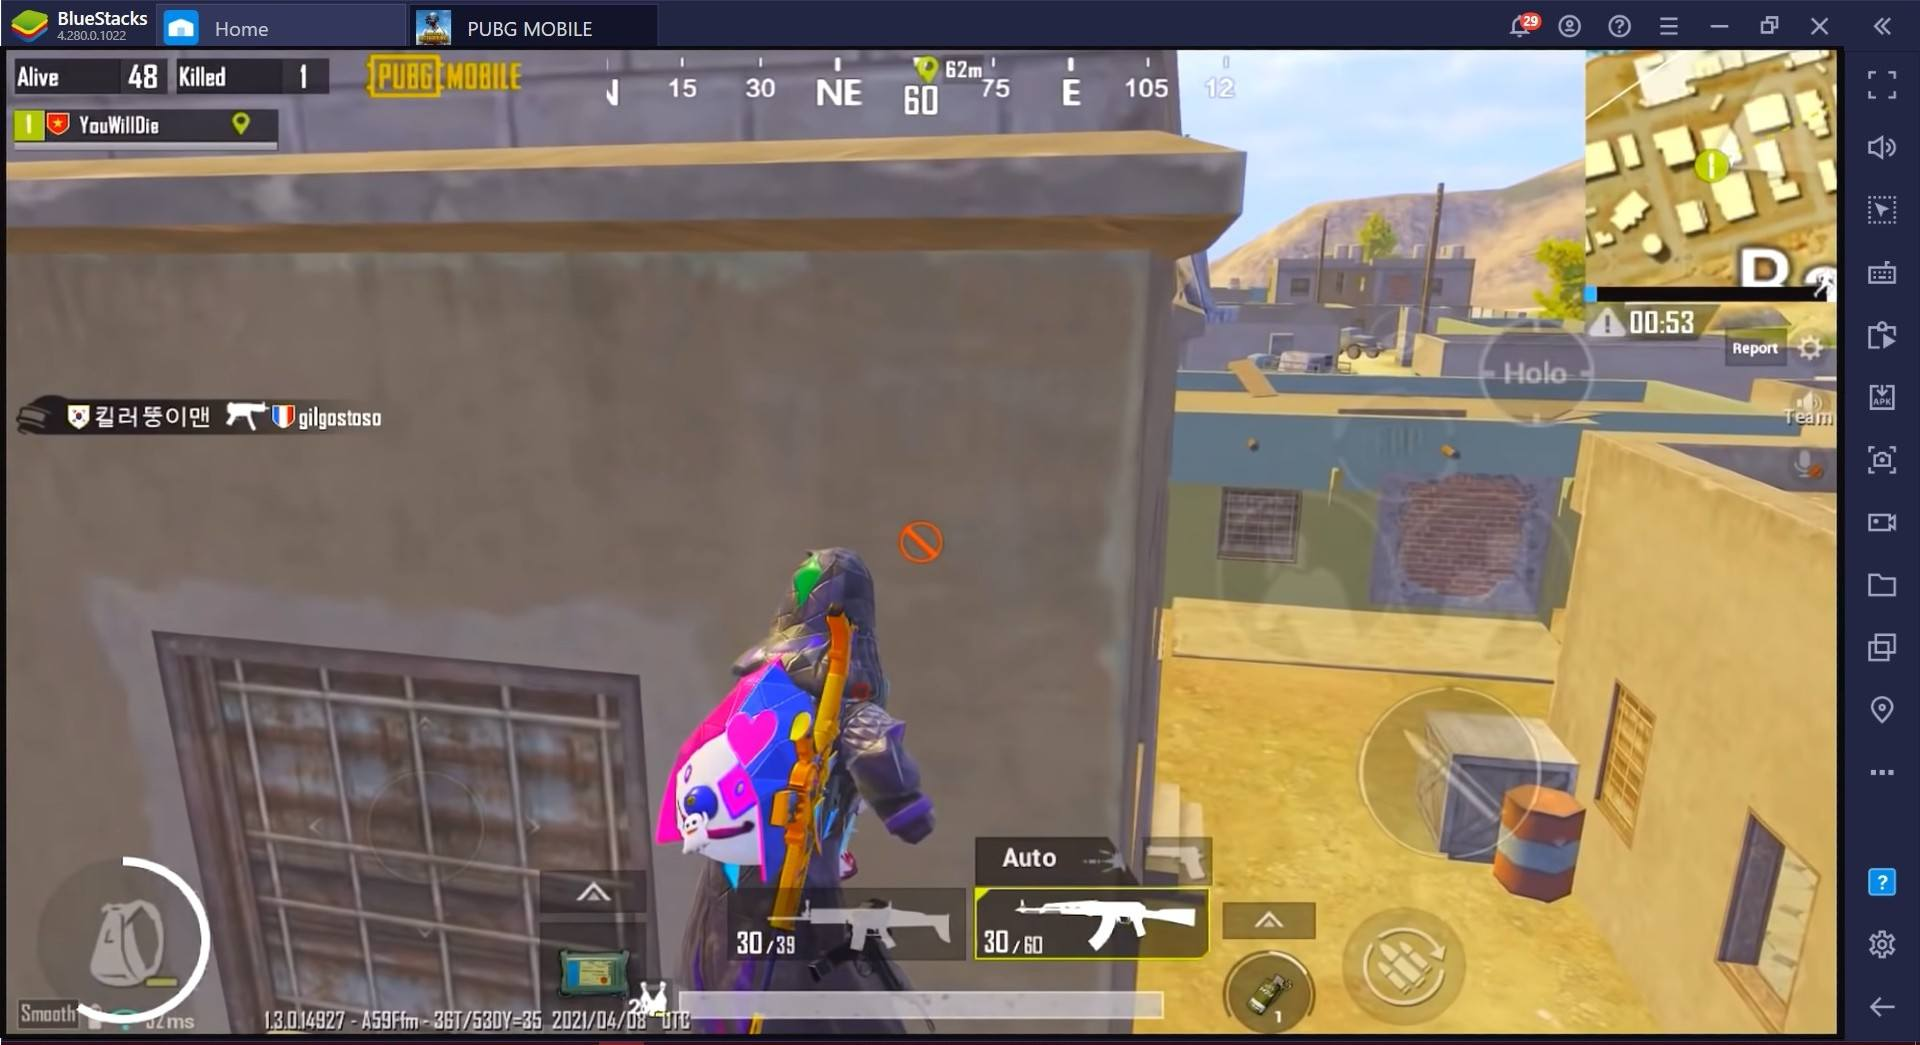 PUBG Mobile Karakin Survival Guide: You'll Need More Than Tips and Tricks Here